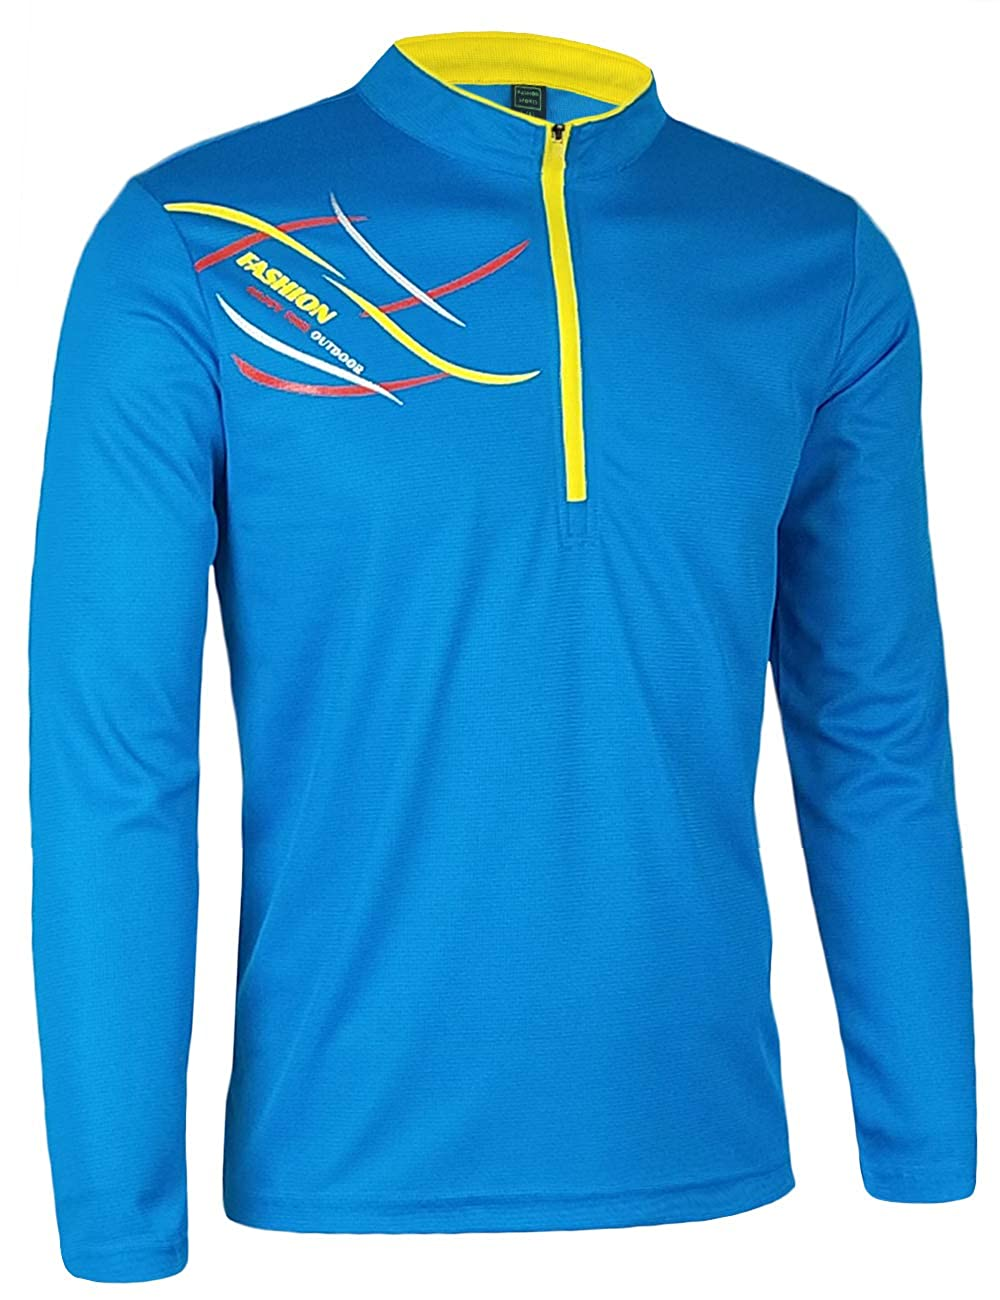 ZOXO Mens Performance Outdoor UV Sun Protection Long Sleeve T Shirts Quick Dry Sports Tee